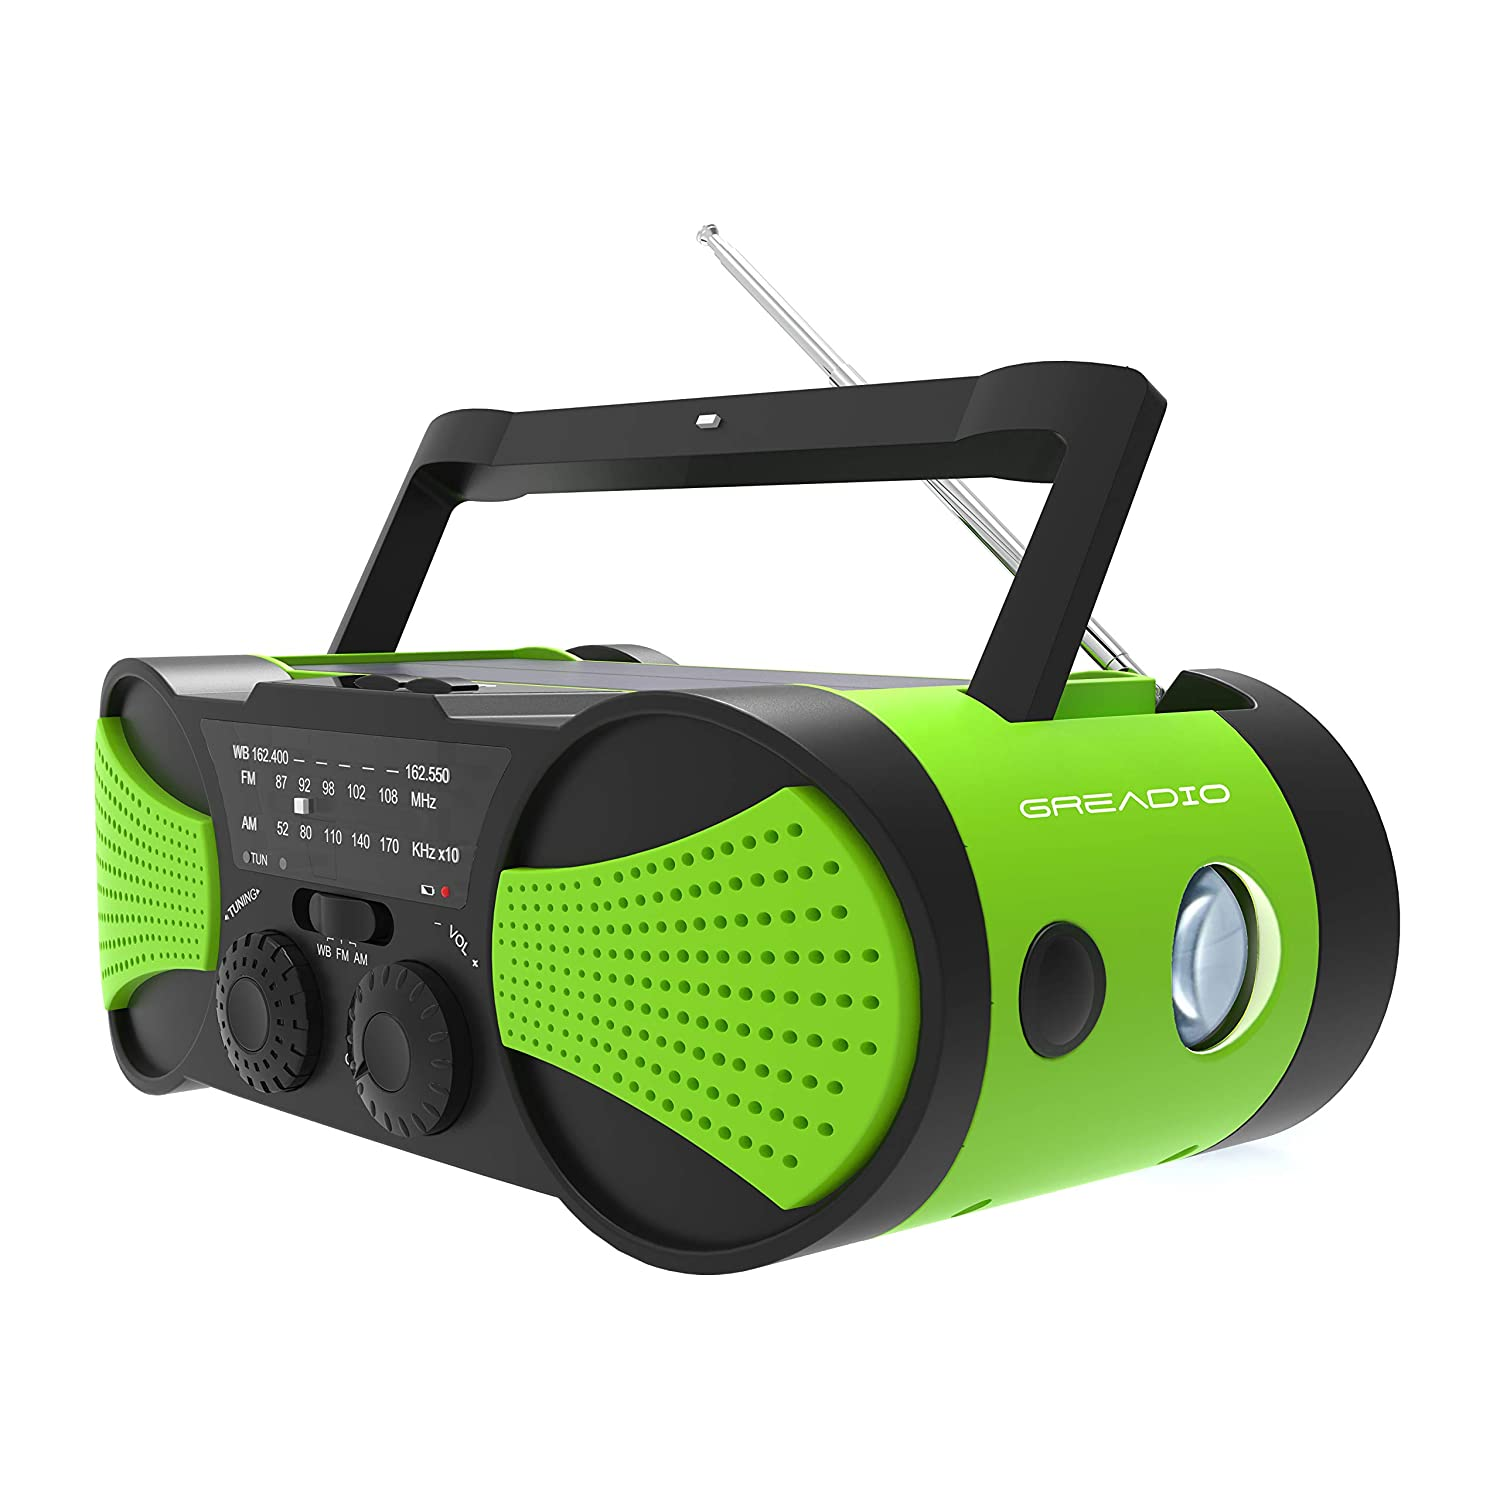 Emergency Weather Radio Hand Crank Self Powered AM/FM/NOAA Solar Radios with Rechargeable 4000mAh Power Bank, Audio Input, 1W Solar Panel, 3W Flashlight, Reading Lamp for Hurricanes, Tornadoes(New) Greadio GR-093